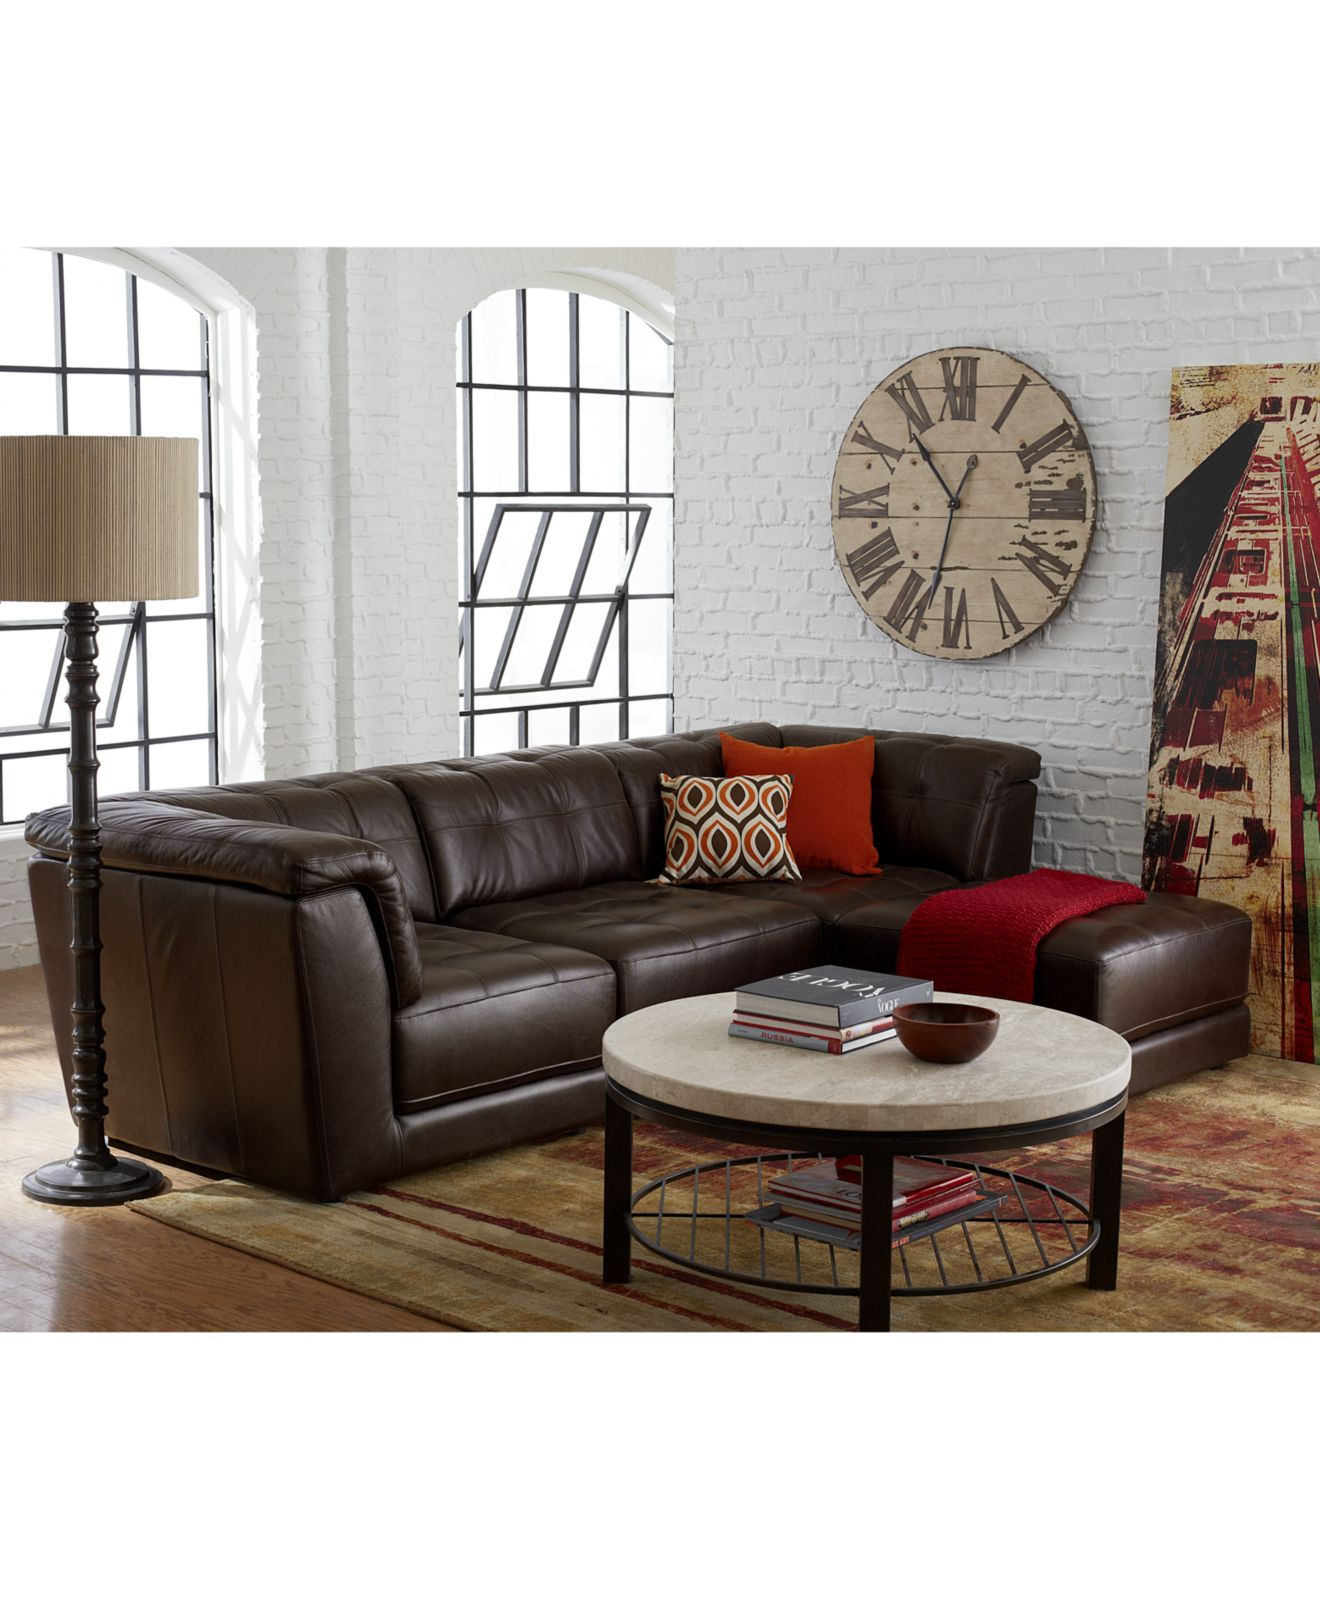 Apartment Living Room Décor and Furniture Macy s